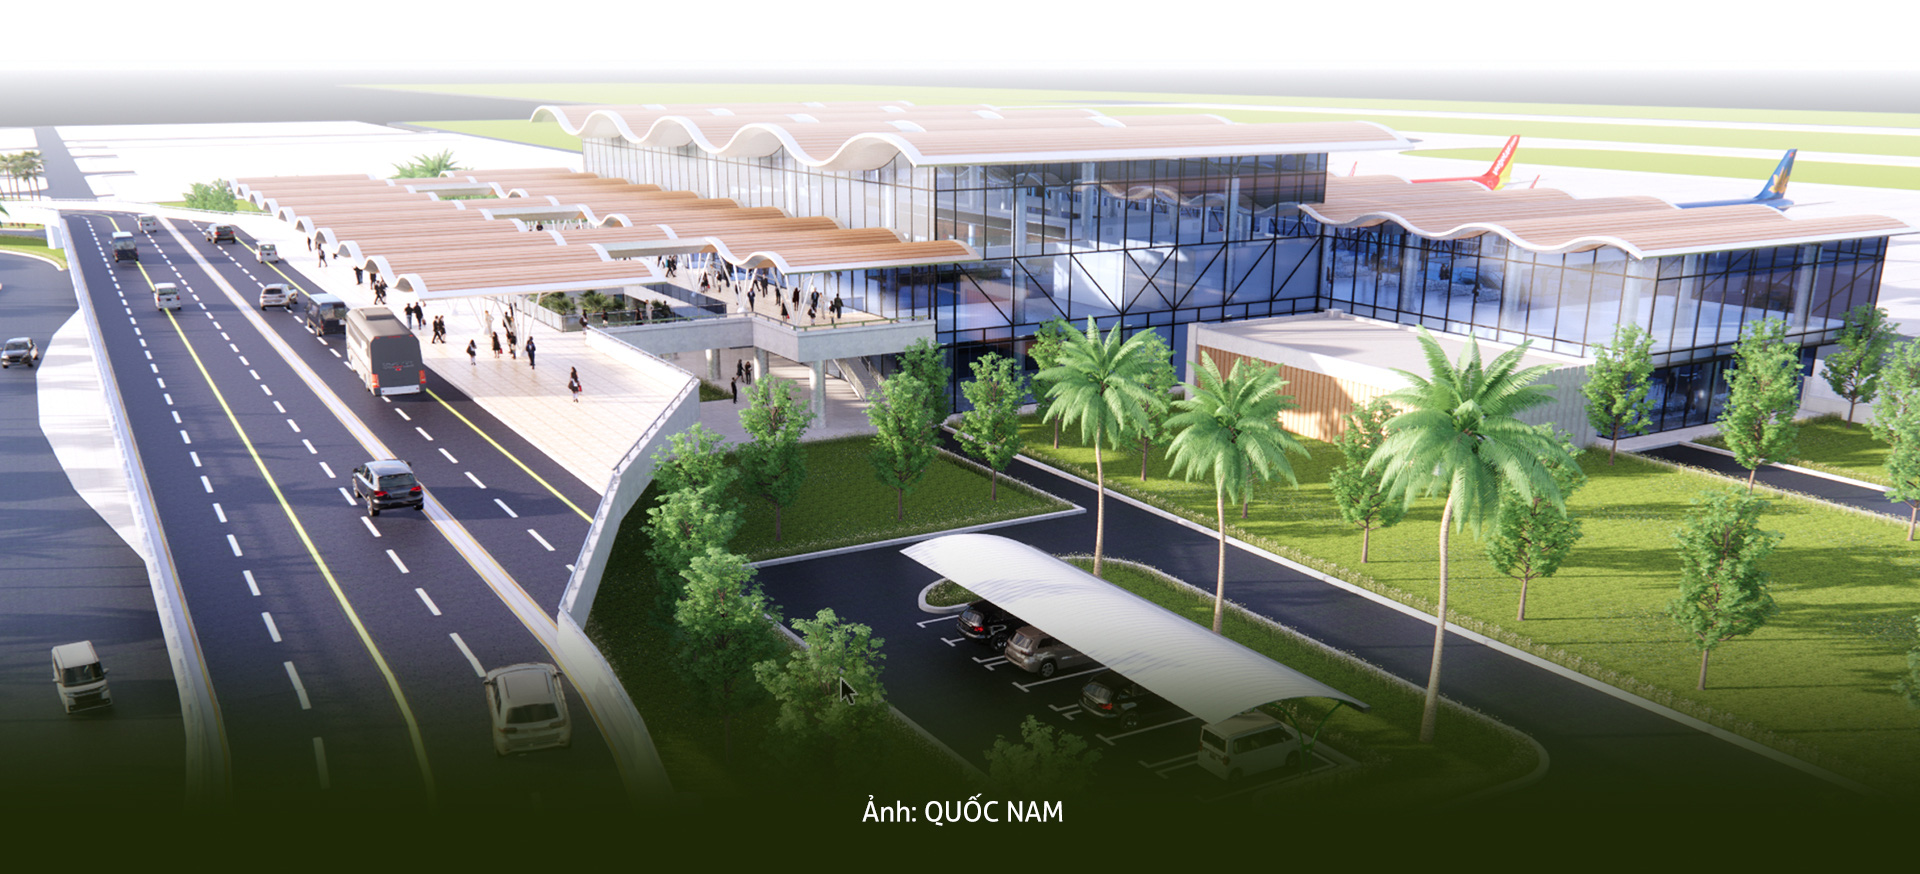 Design options for Quang Tri Airport provided by local authorities. Photo: Quoc Nam / Tuoi Tre